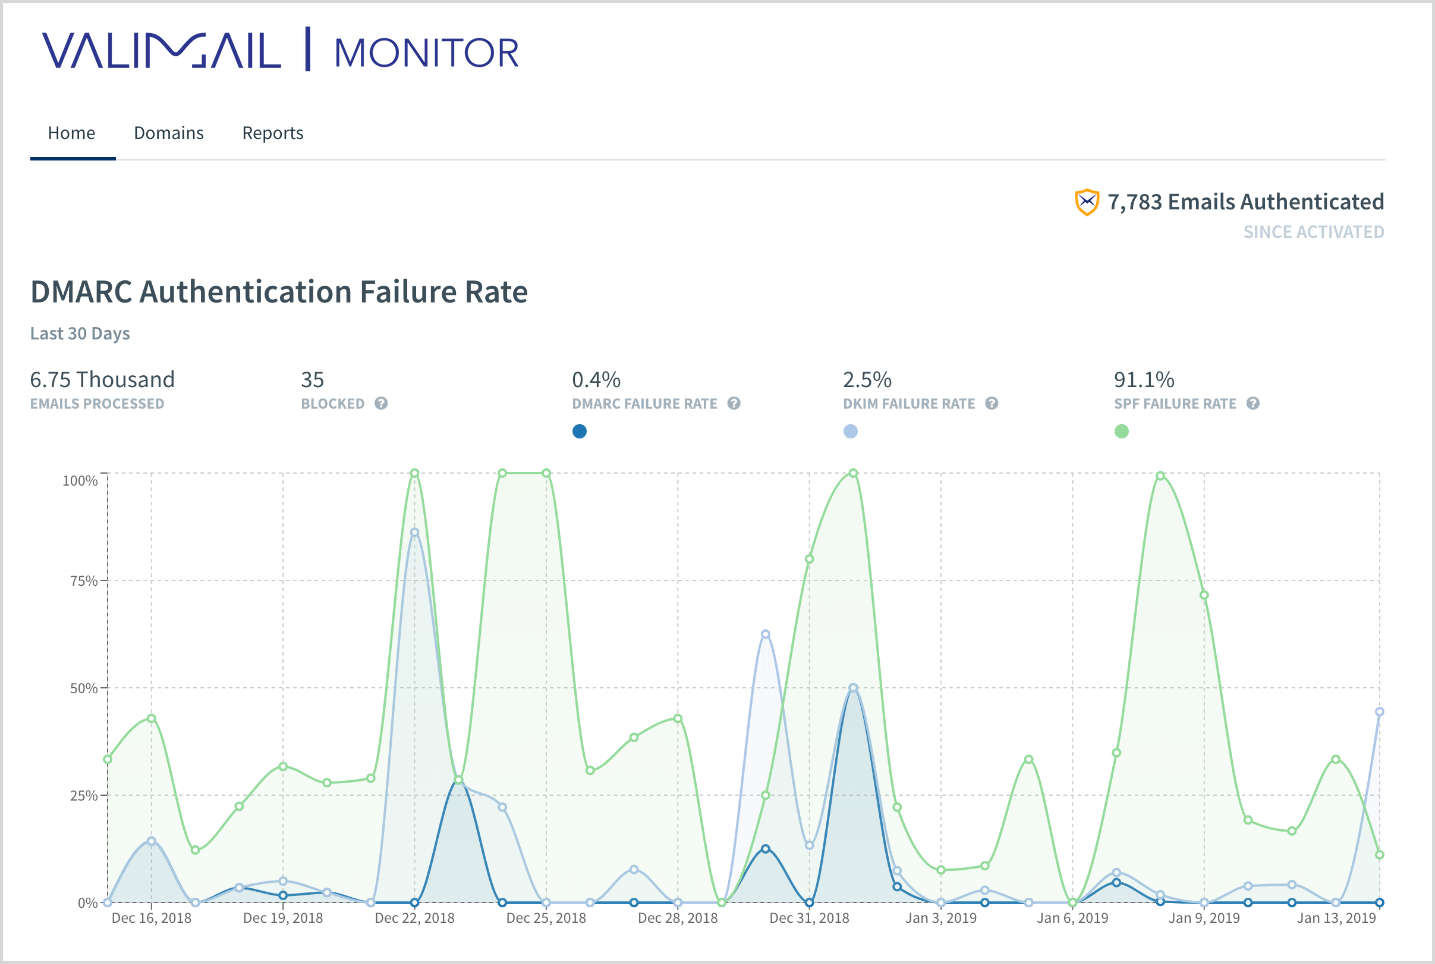 Step-by-Step Guide to Configure Valimail for DMARC Monitoring With Office 365 and Azure SSO 4